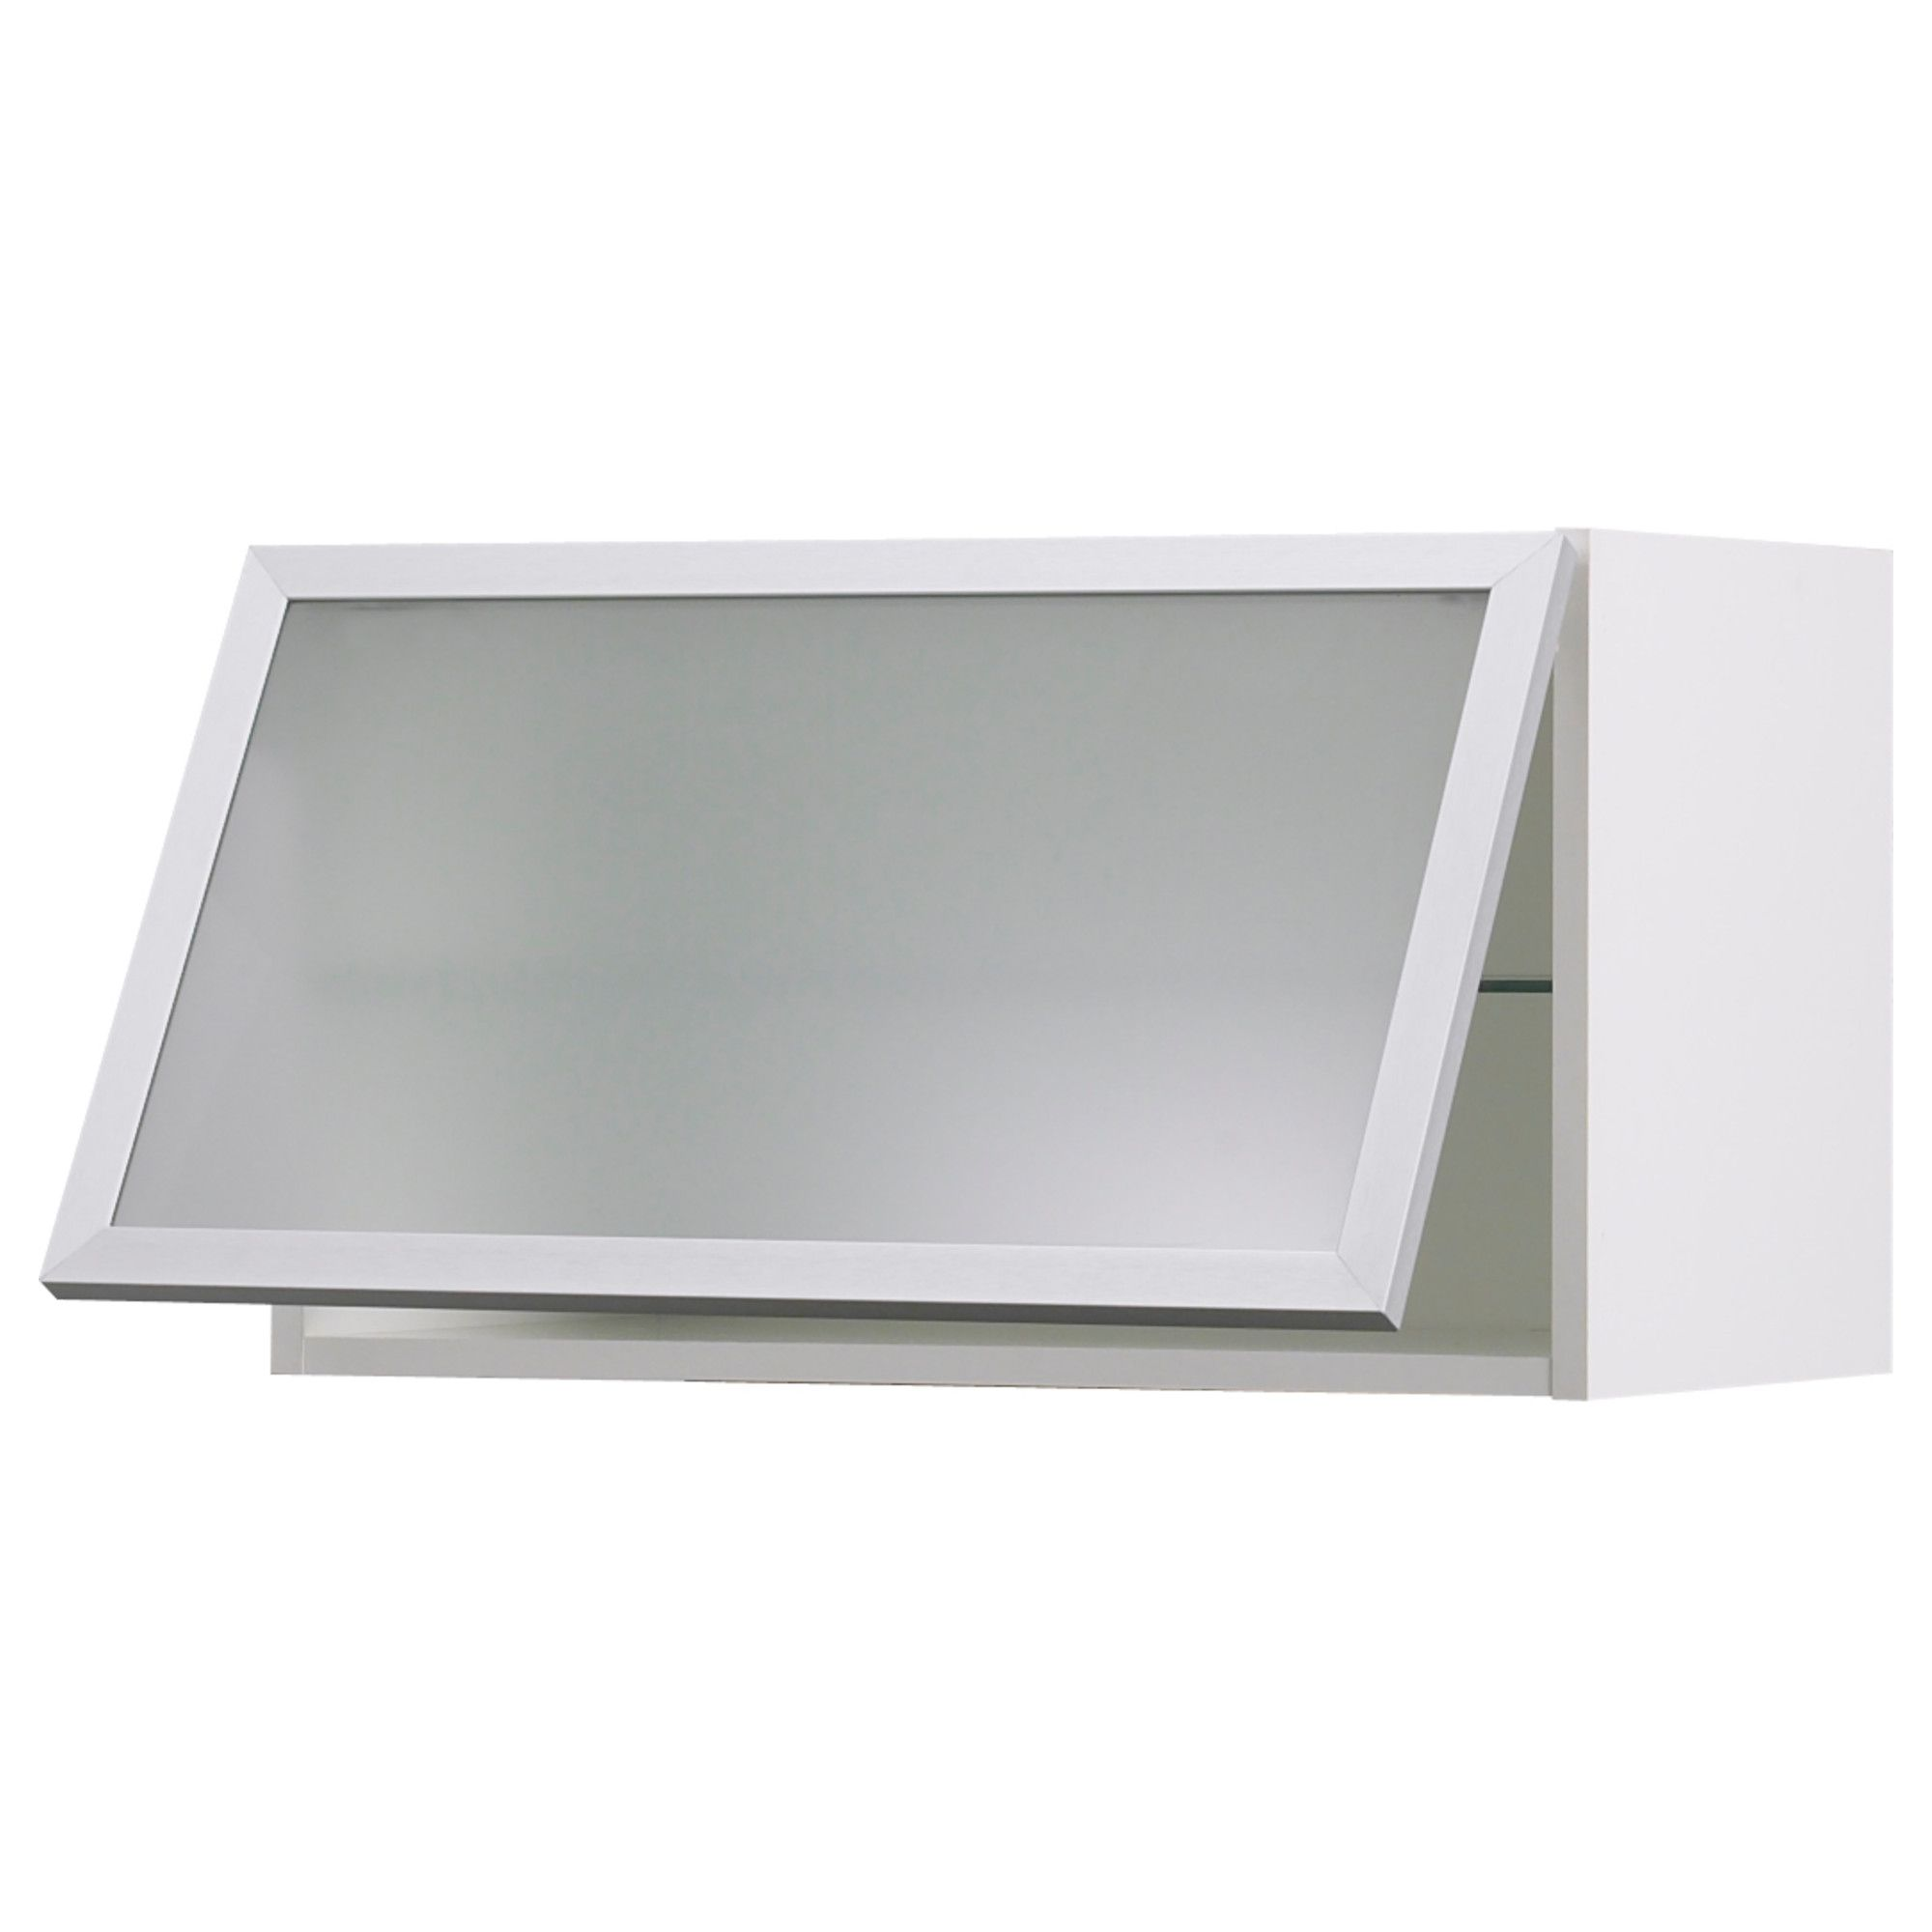 Ikea akurum horizontal wall cabinets with frosted glass for Glass kitchen wall units